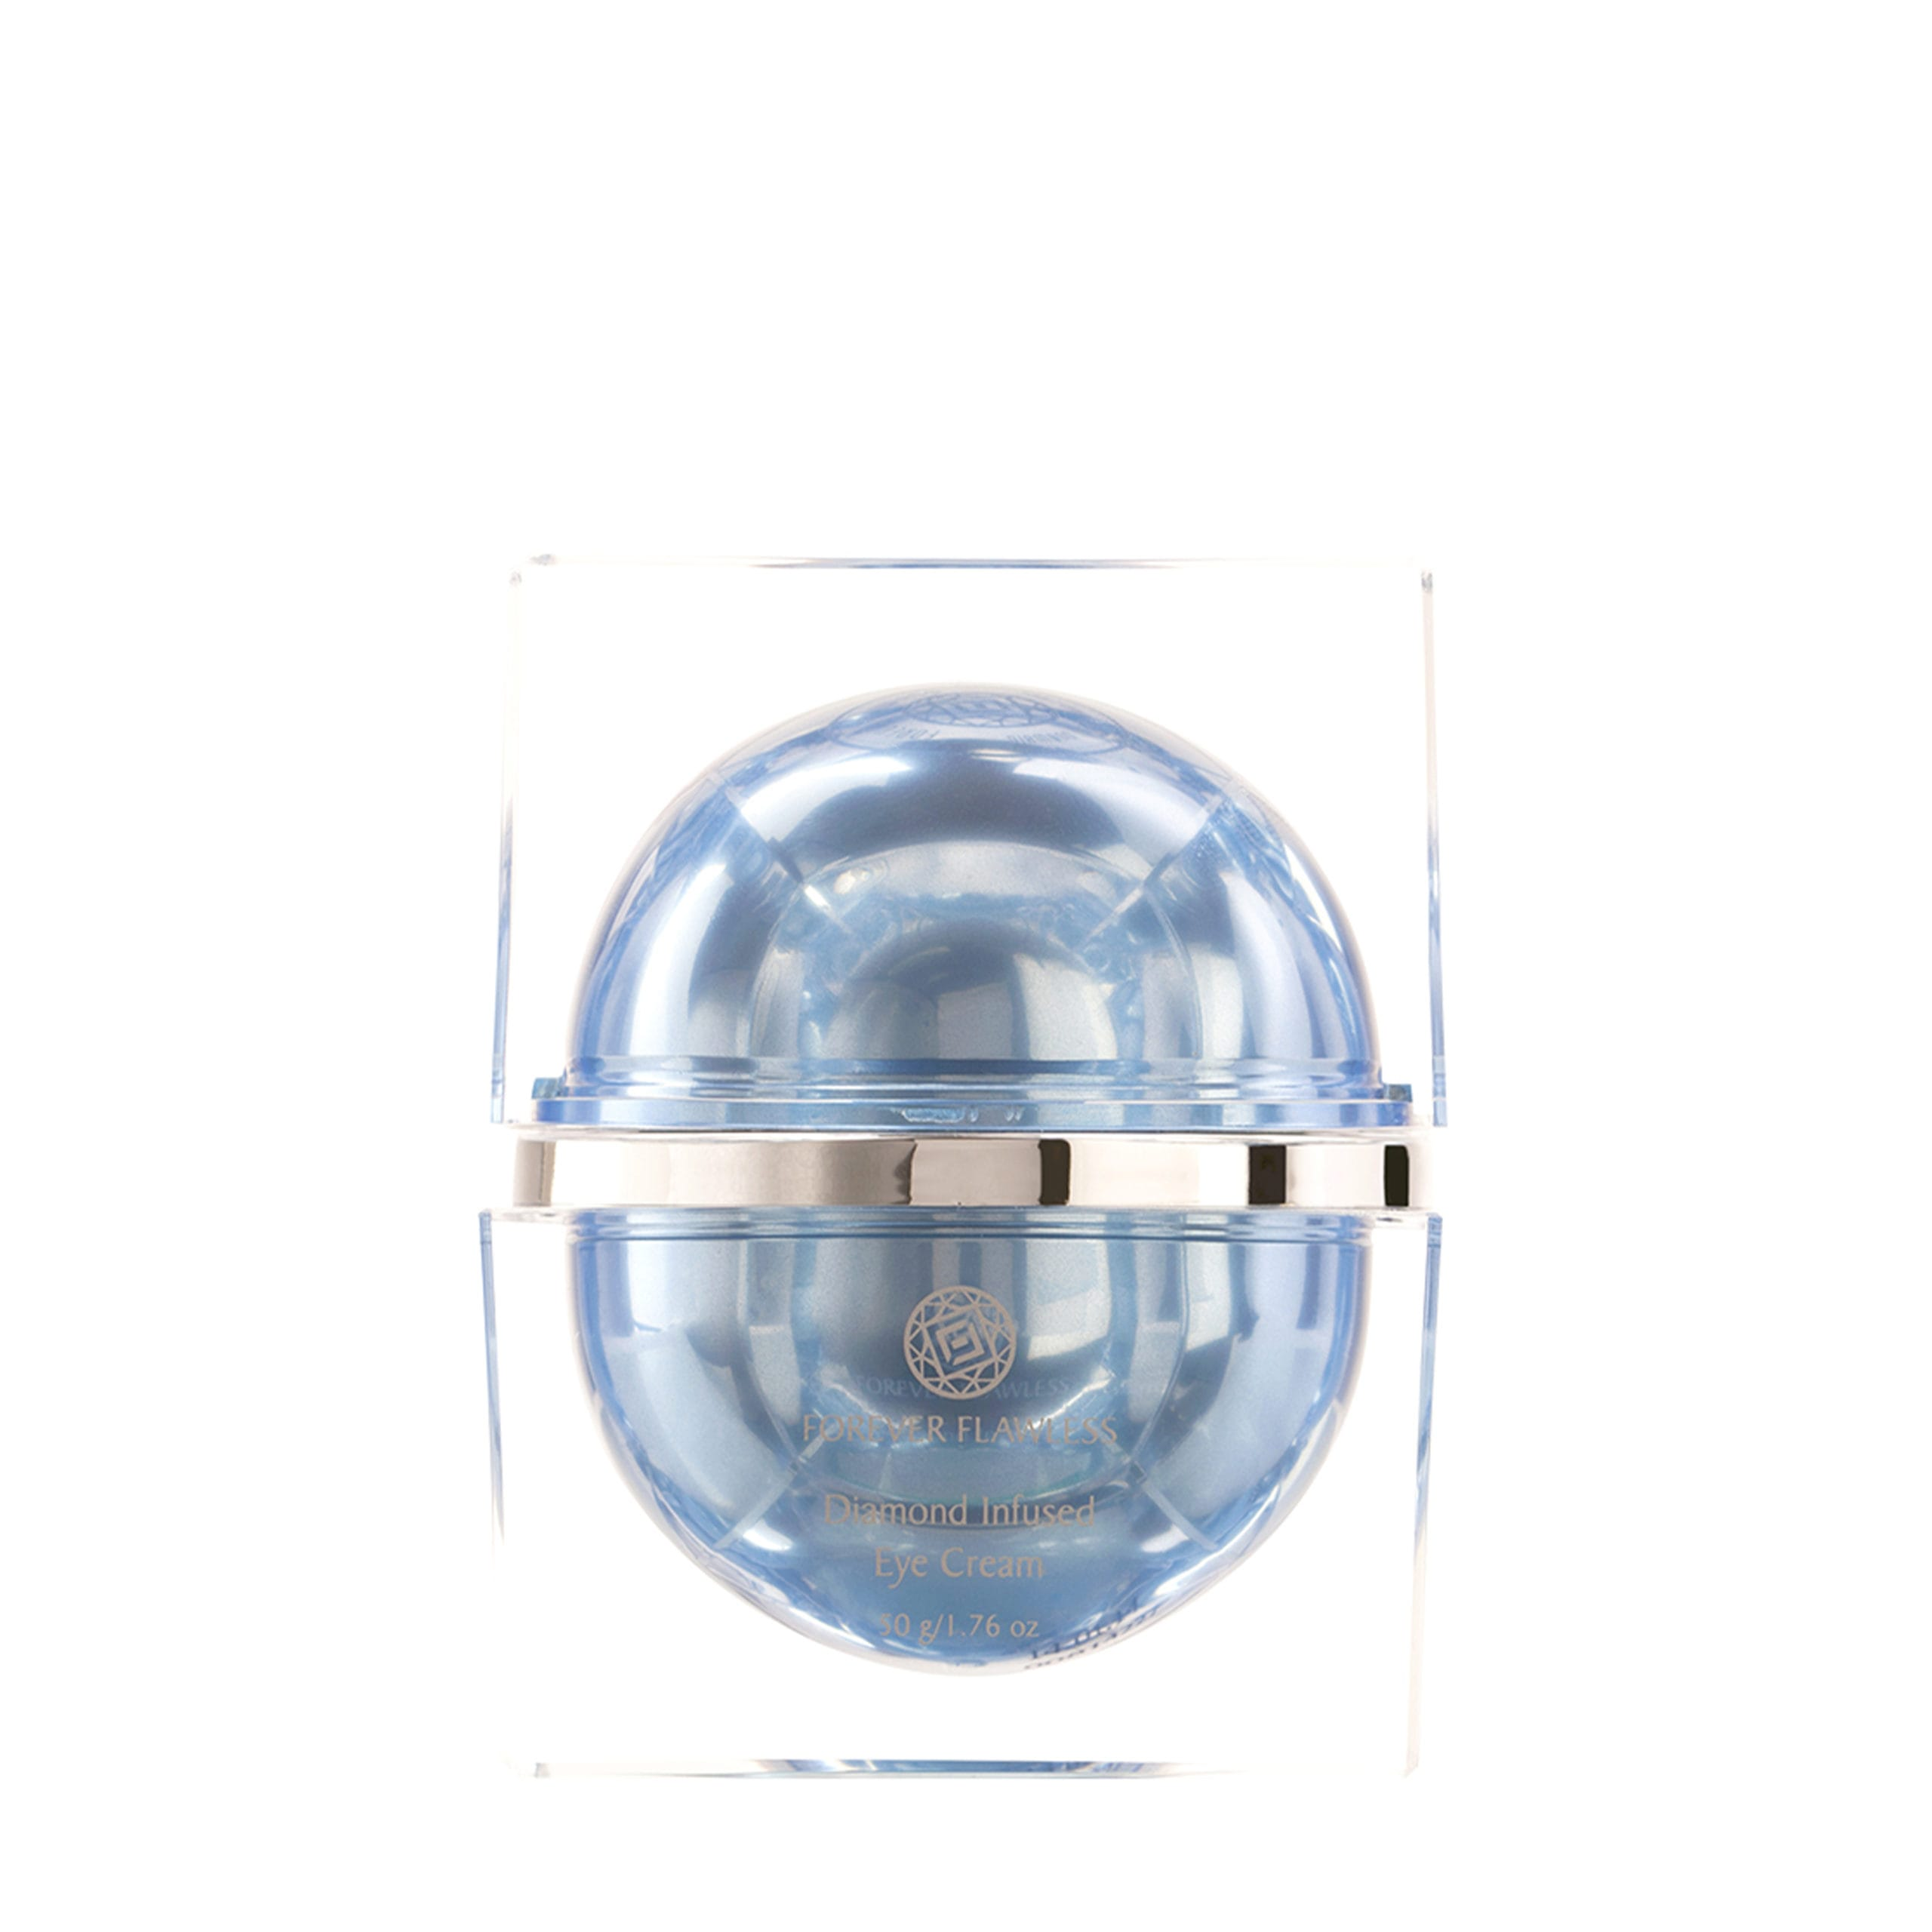 Forever Flawless Diamond Infused Eye Cream (MSRP $225) Giveaway Image